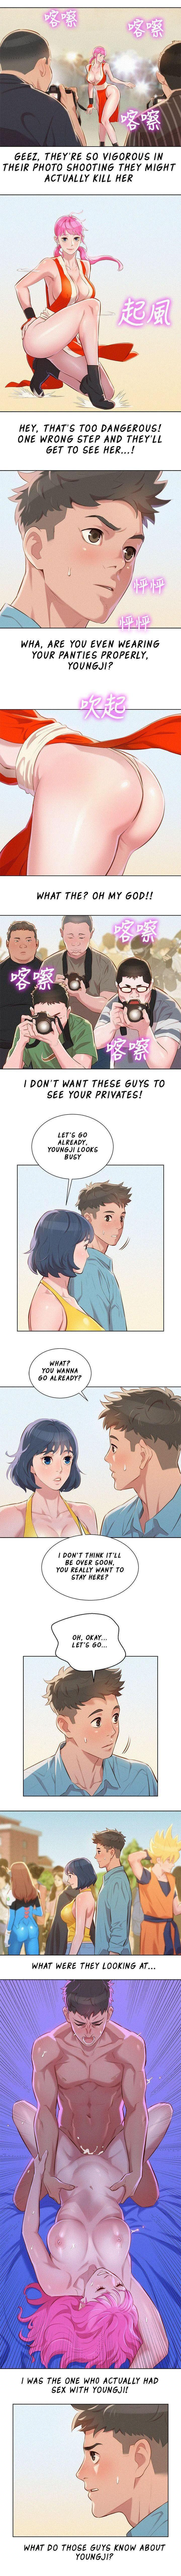 What do you Take me For? Ch.50/? 386